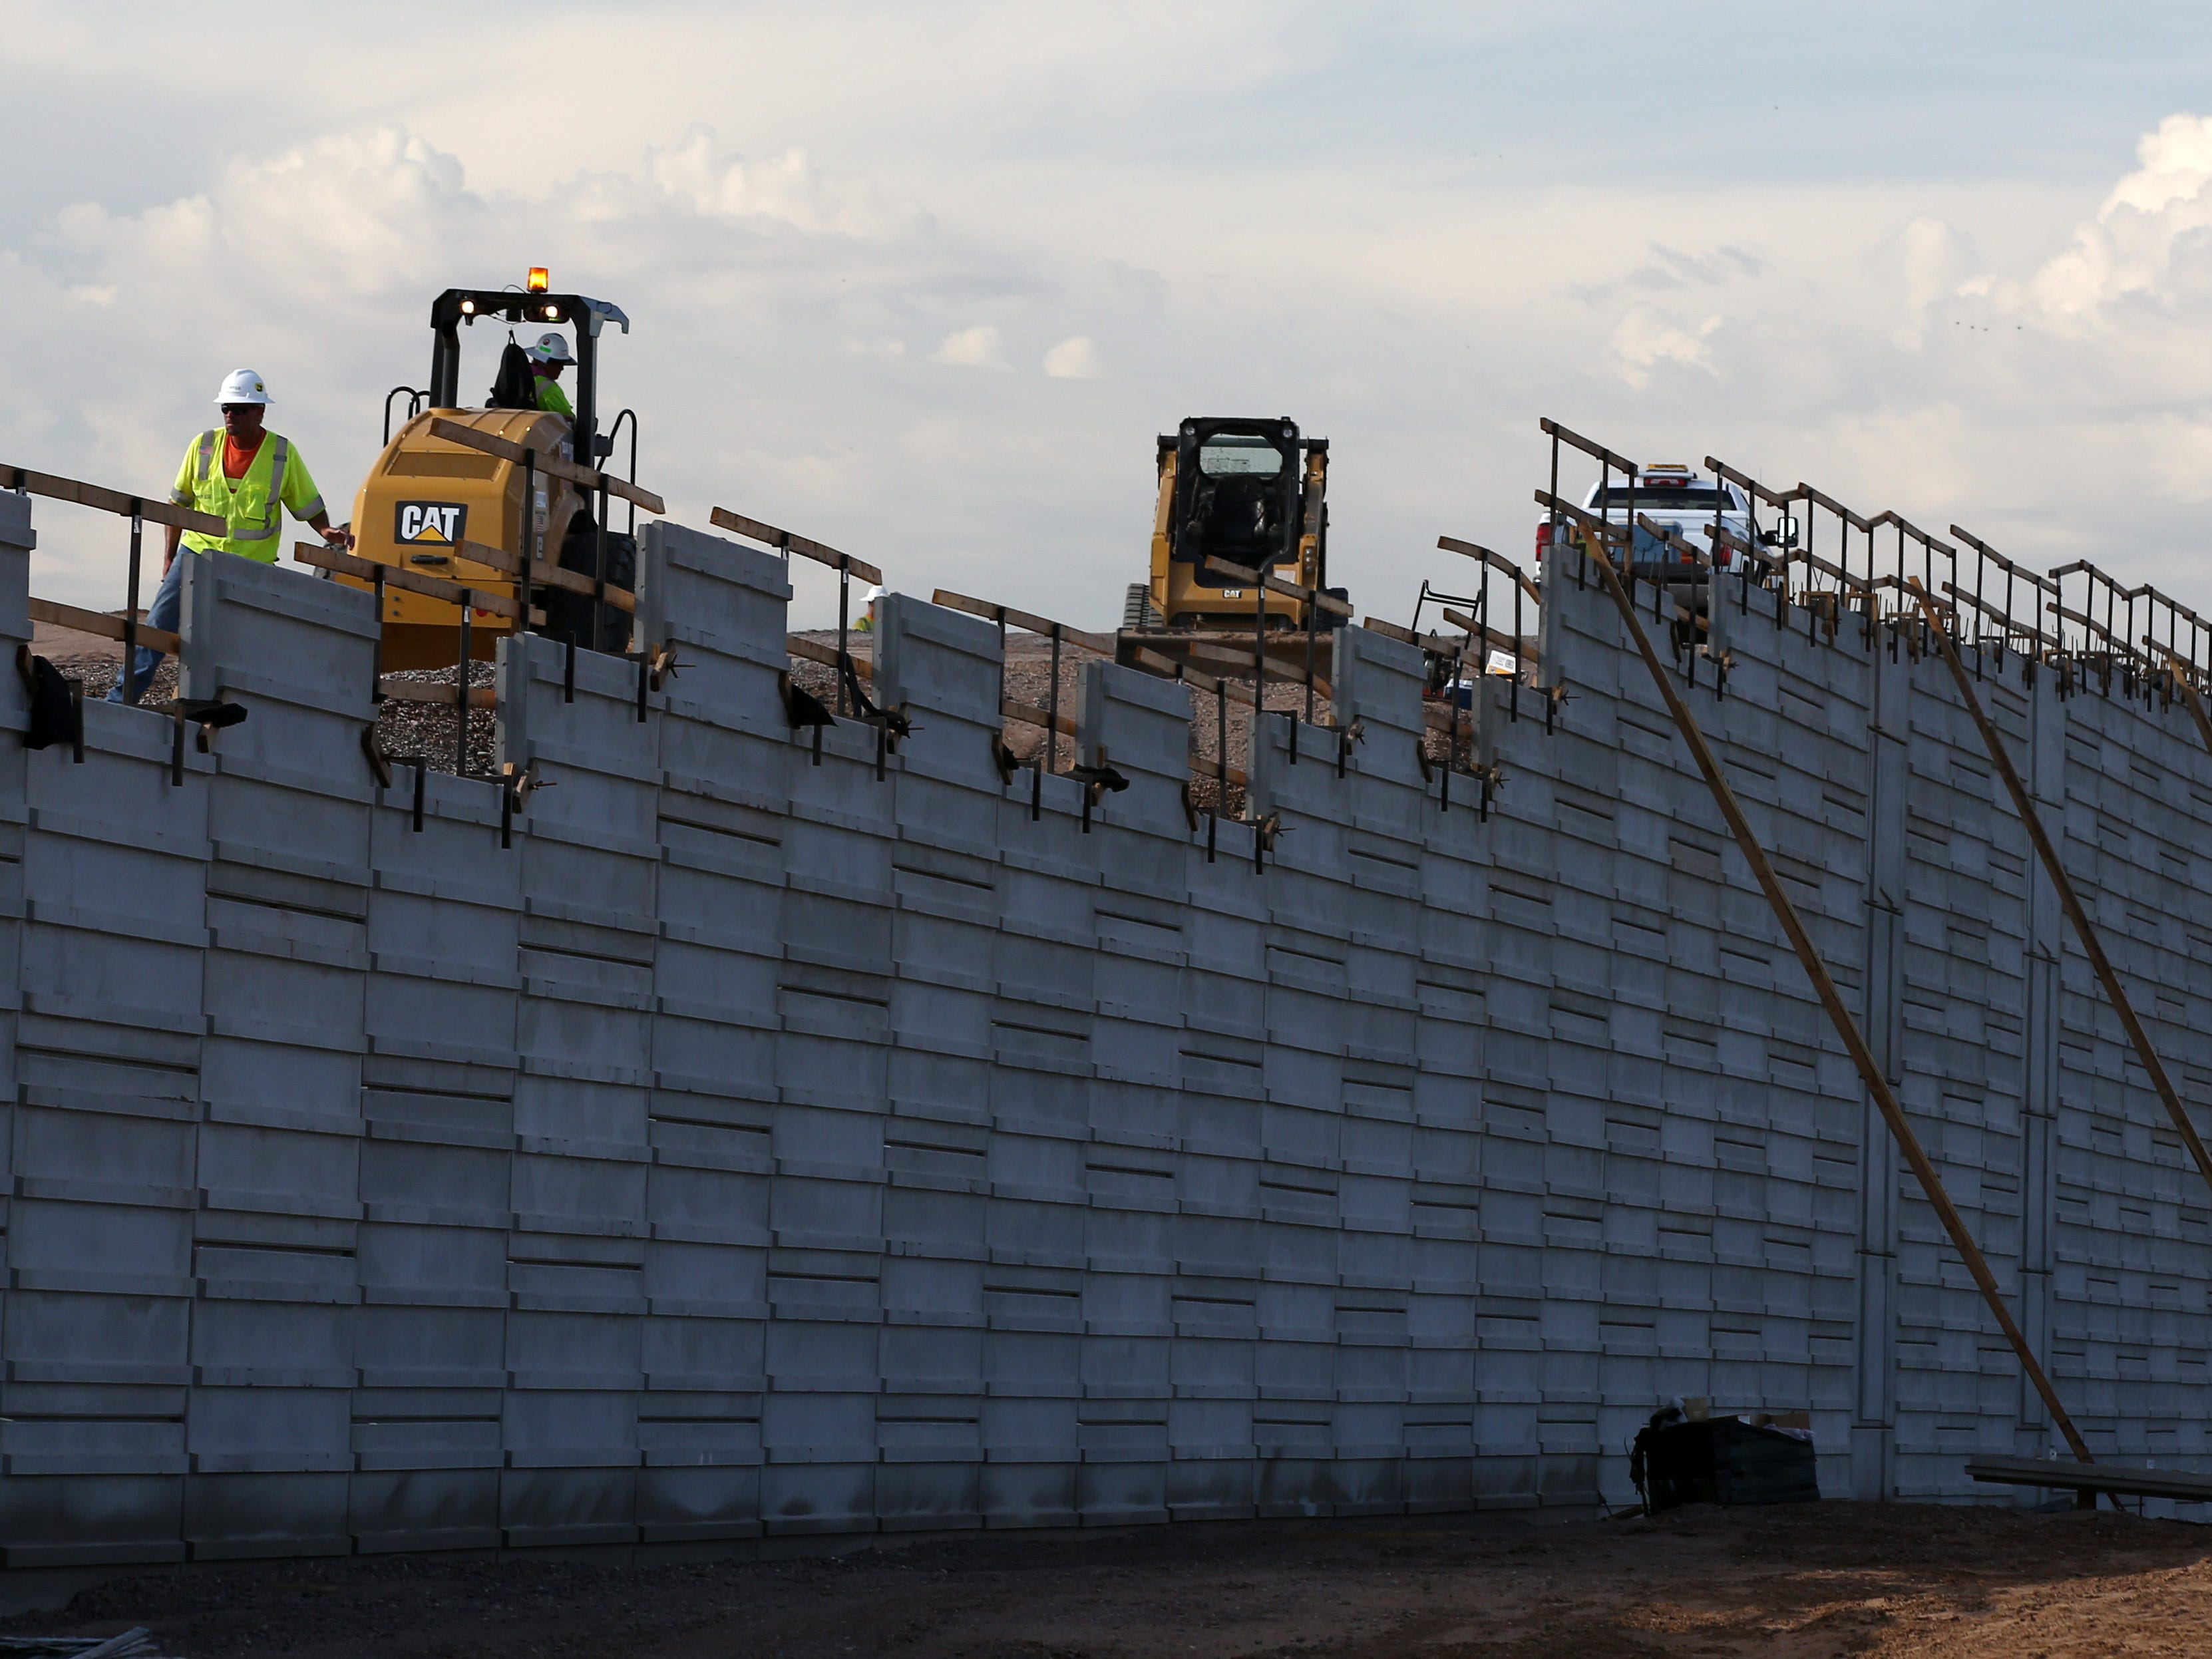 Construction and maintenance crews working on Arizona's highways are taking every precaution to beat the heat with temperatures soaring this week on July 24, 2018, in Phoenix, Ariz.